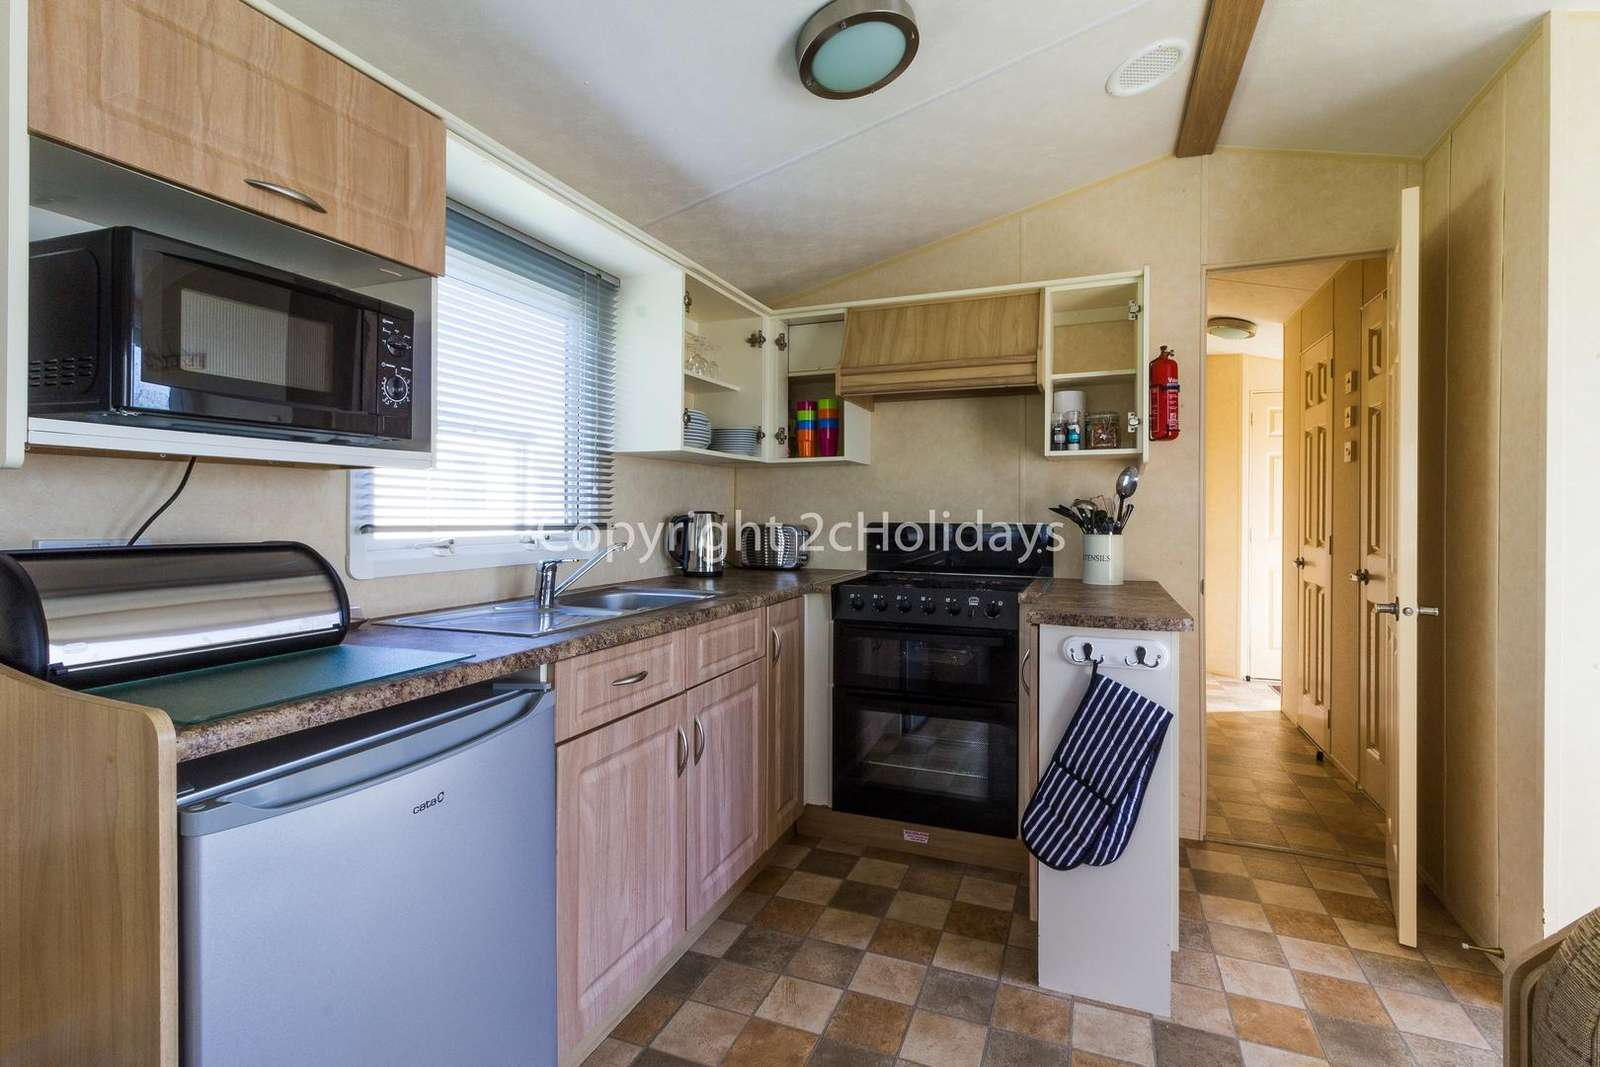 Fully equipped kitchen, perfect for self-catering breaks!